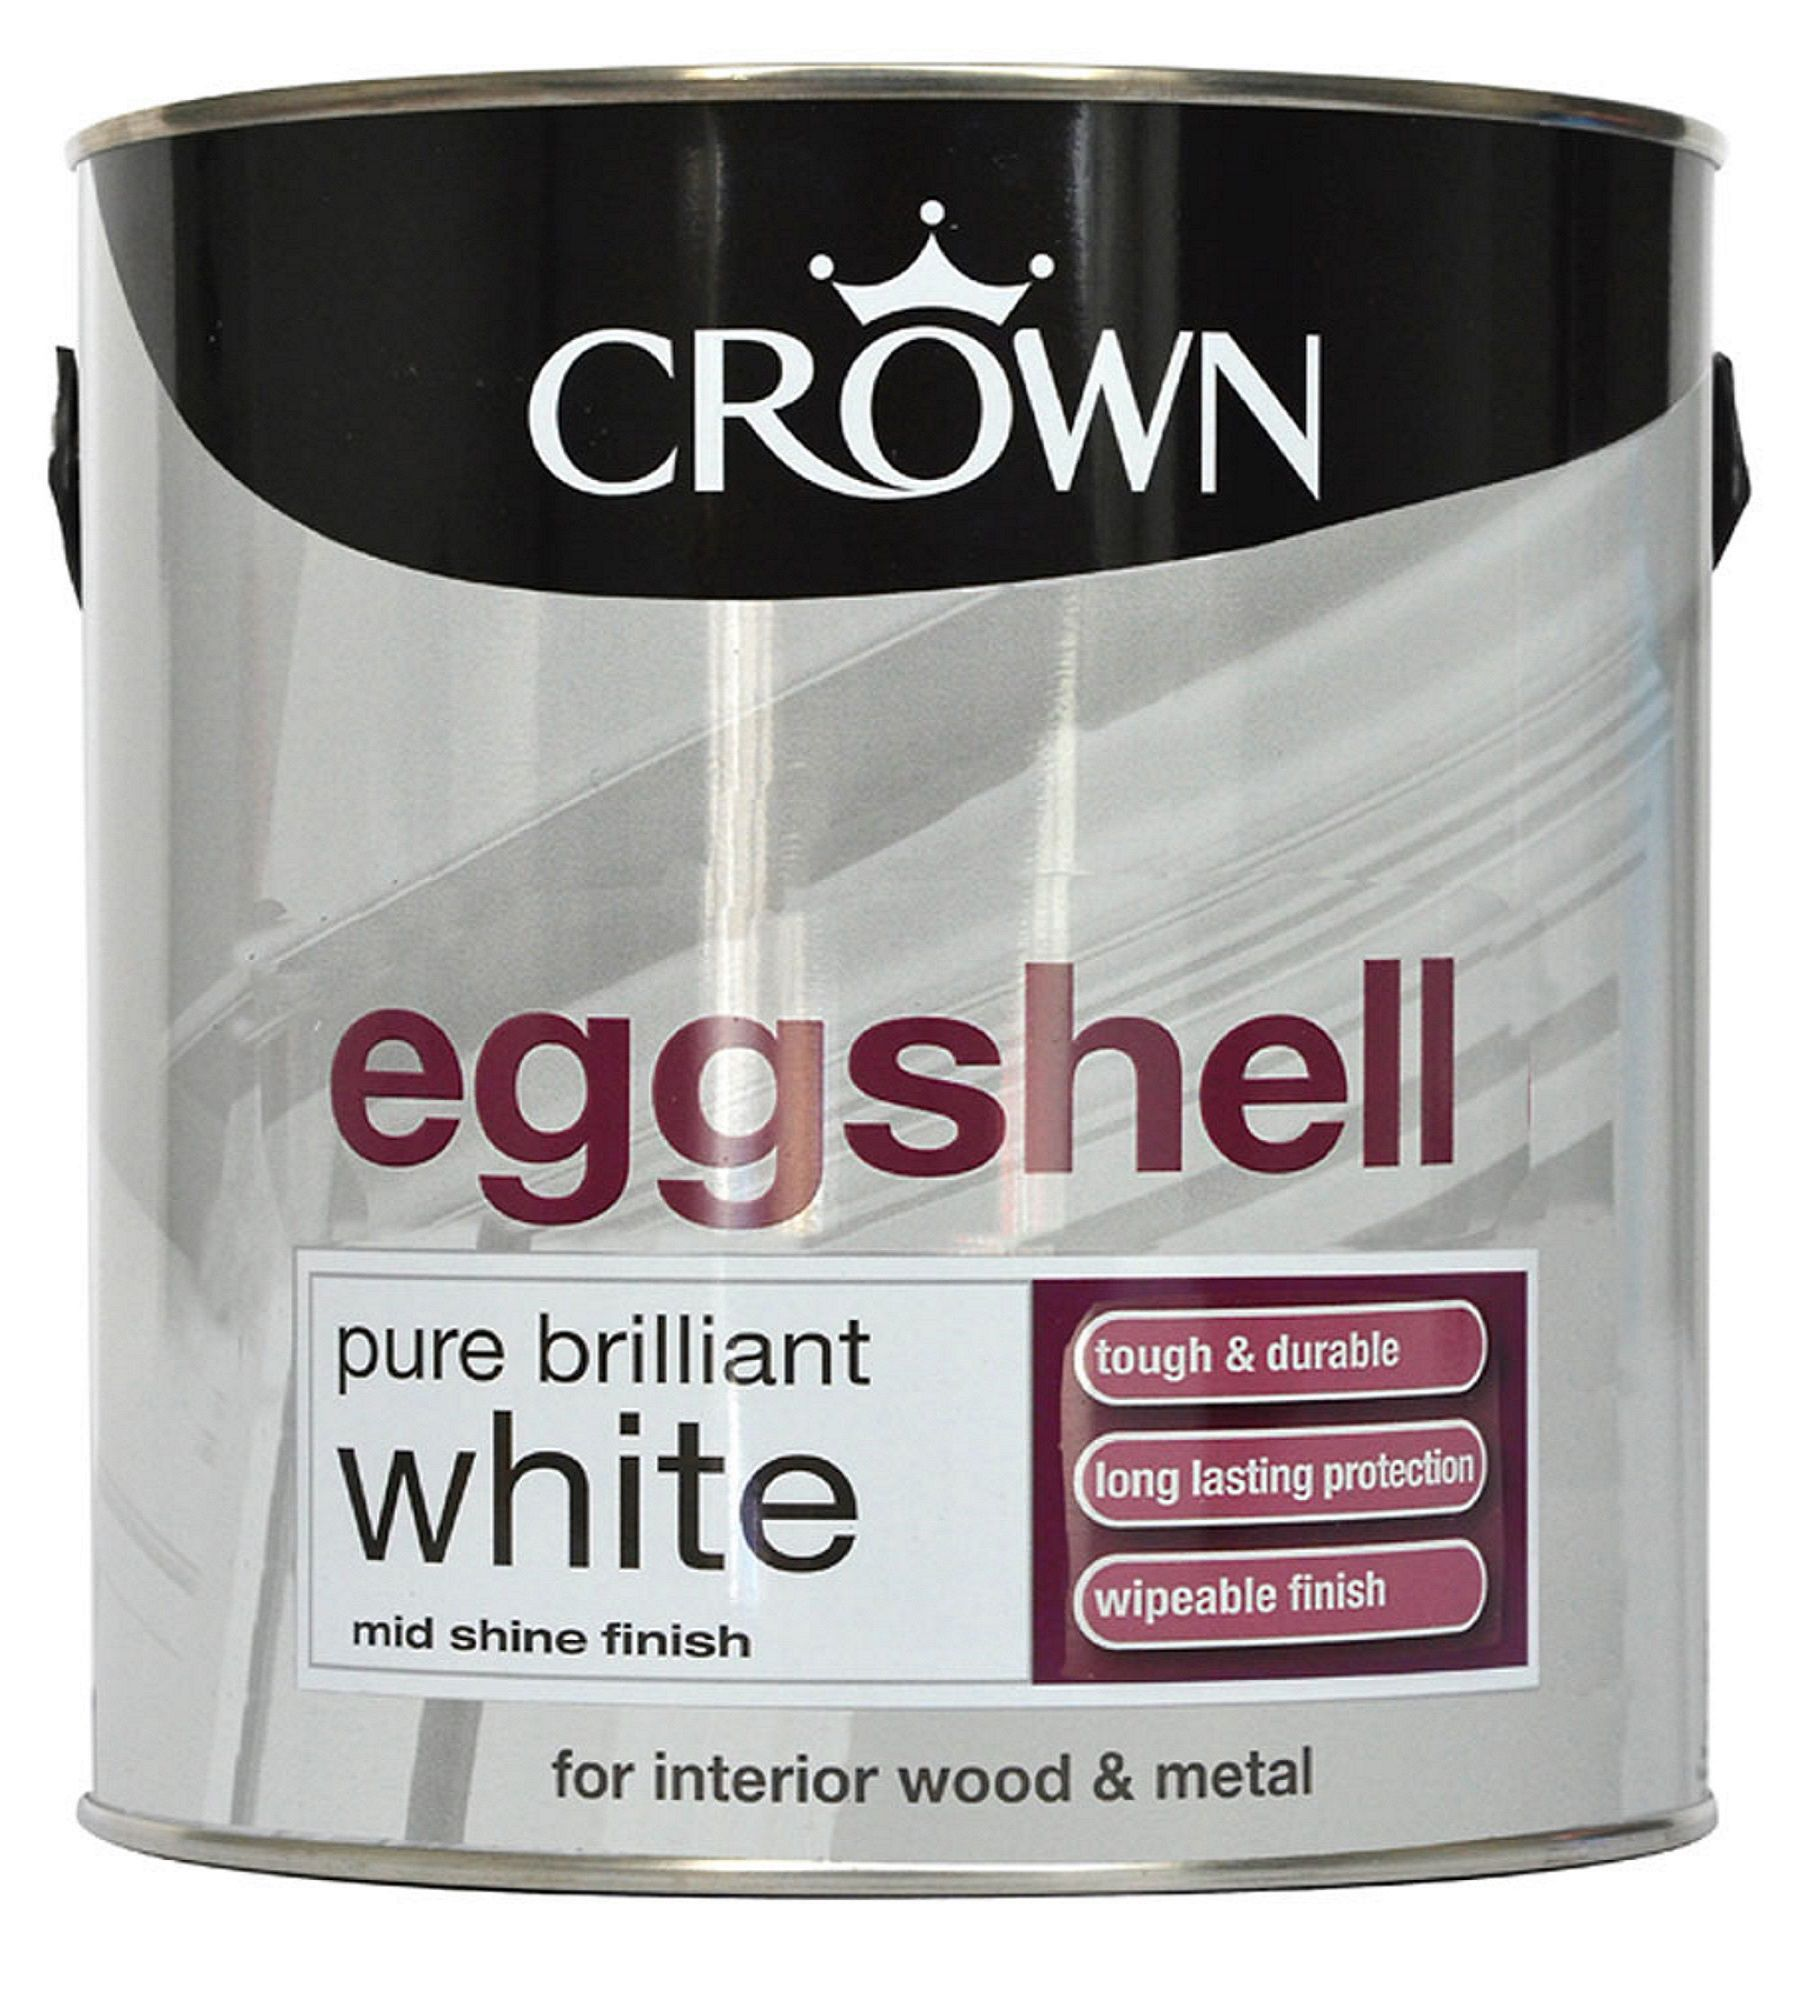 Crown Interior Pure Brilliant White Eggshell Wood & Metal Paint 2.5l